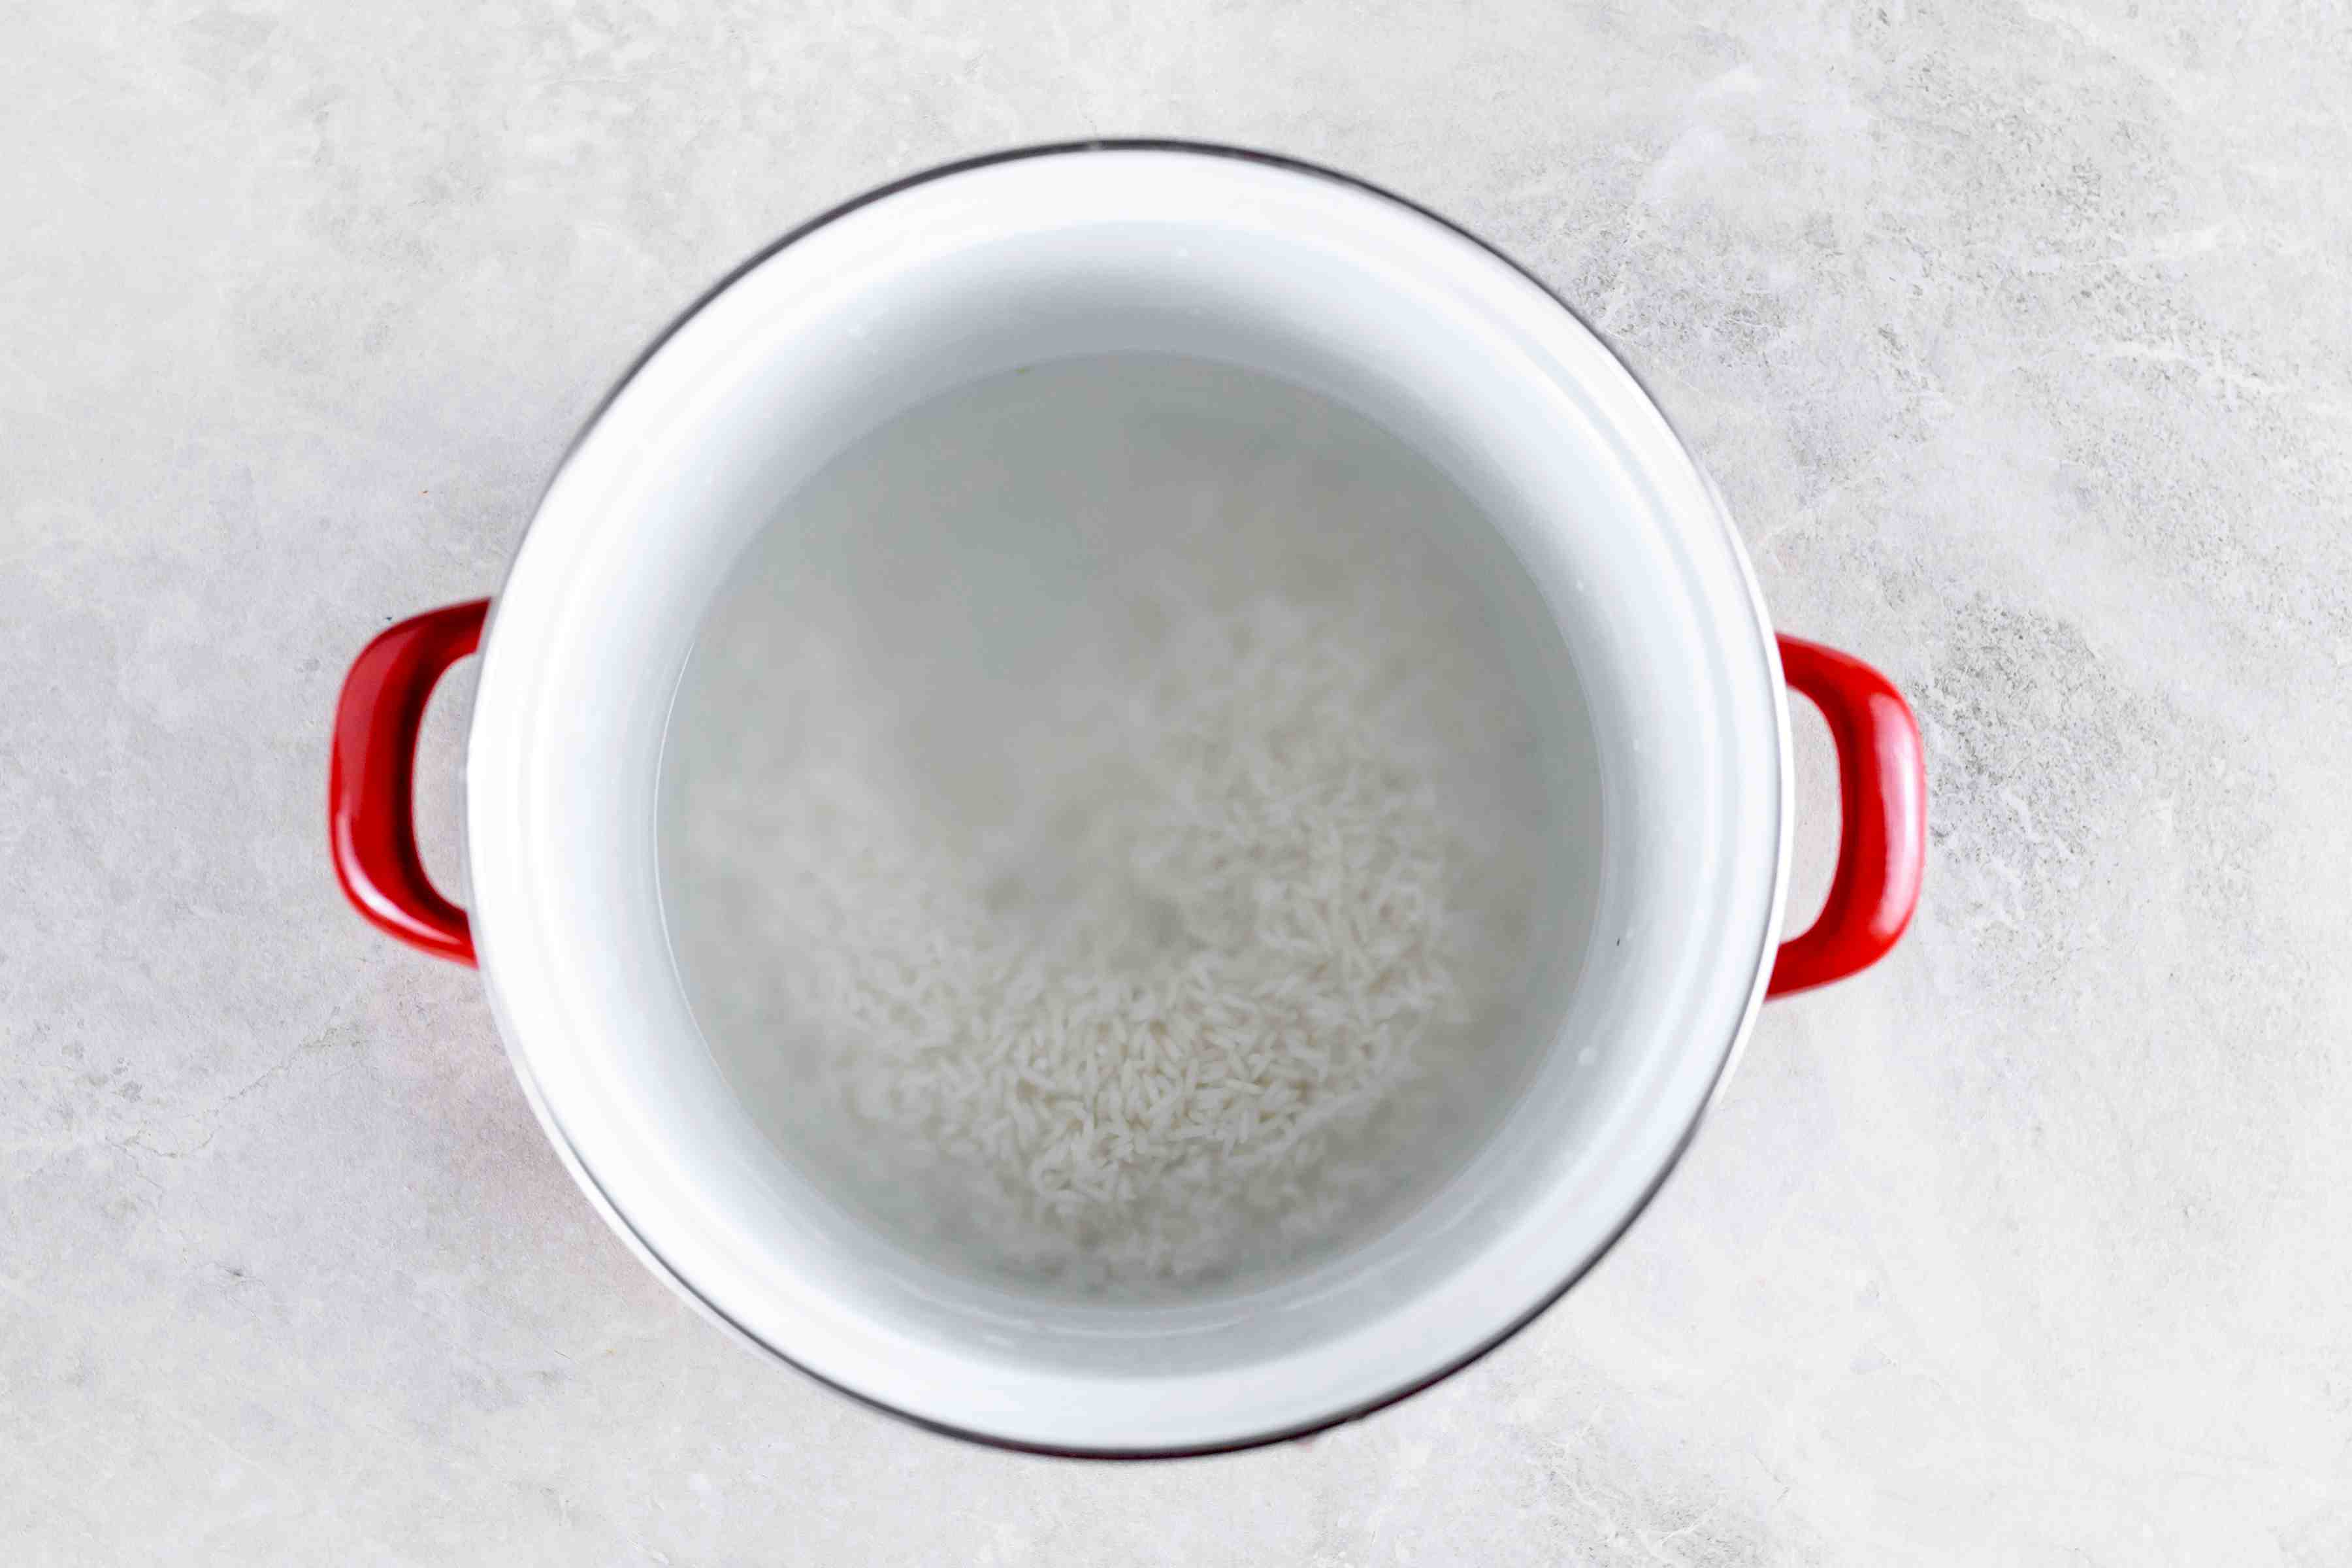 Boil water and add rice